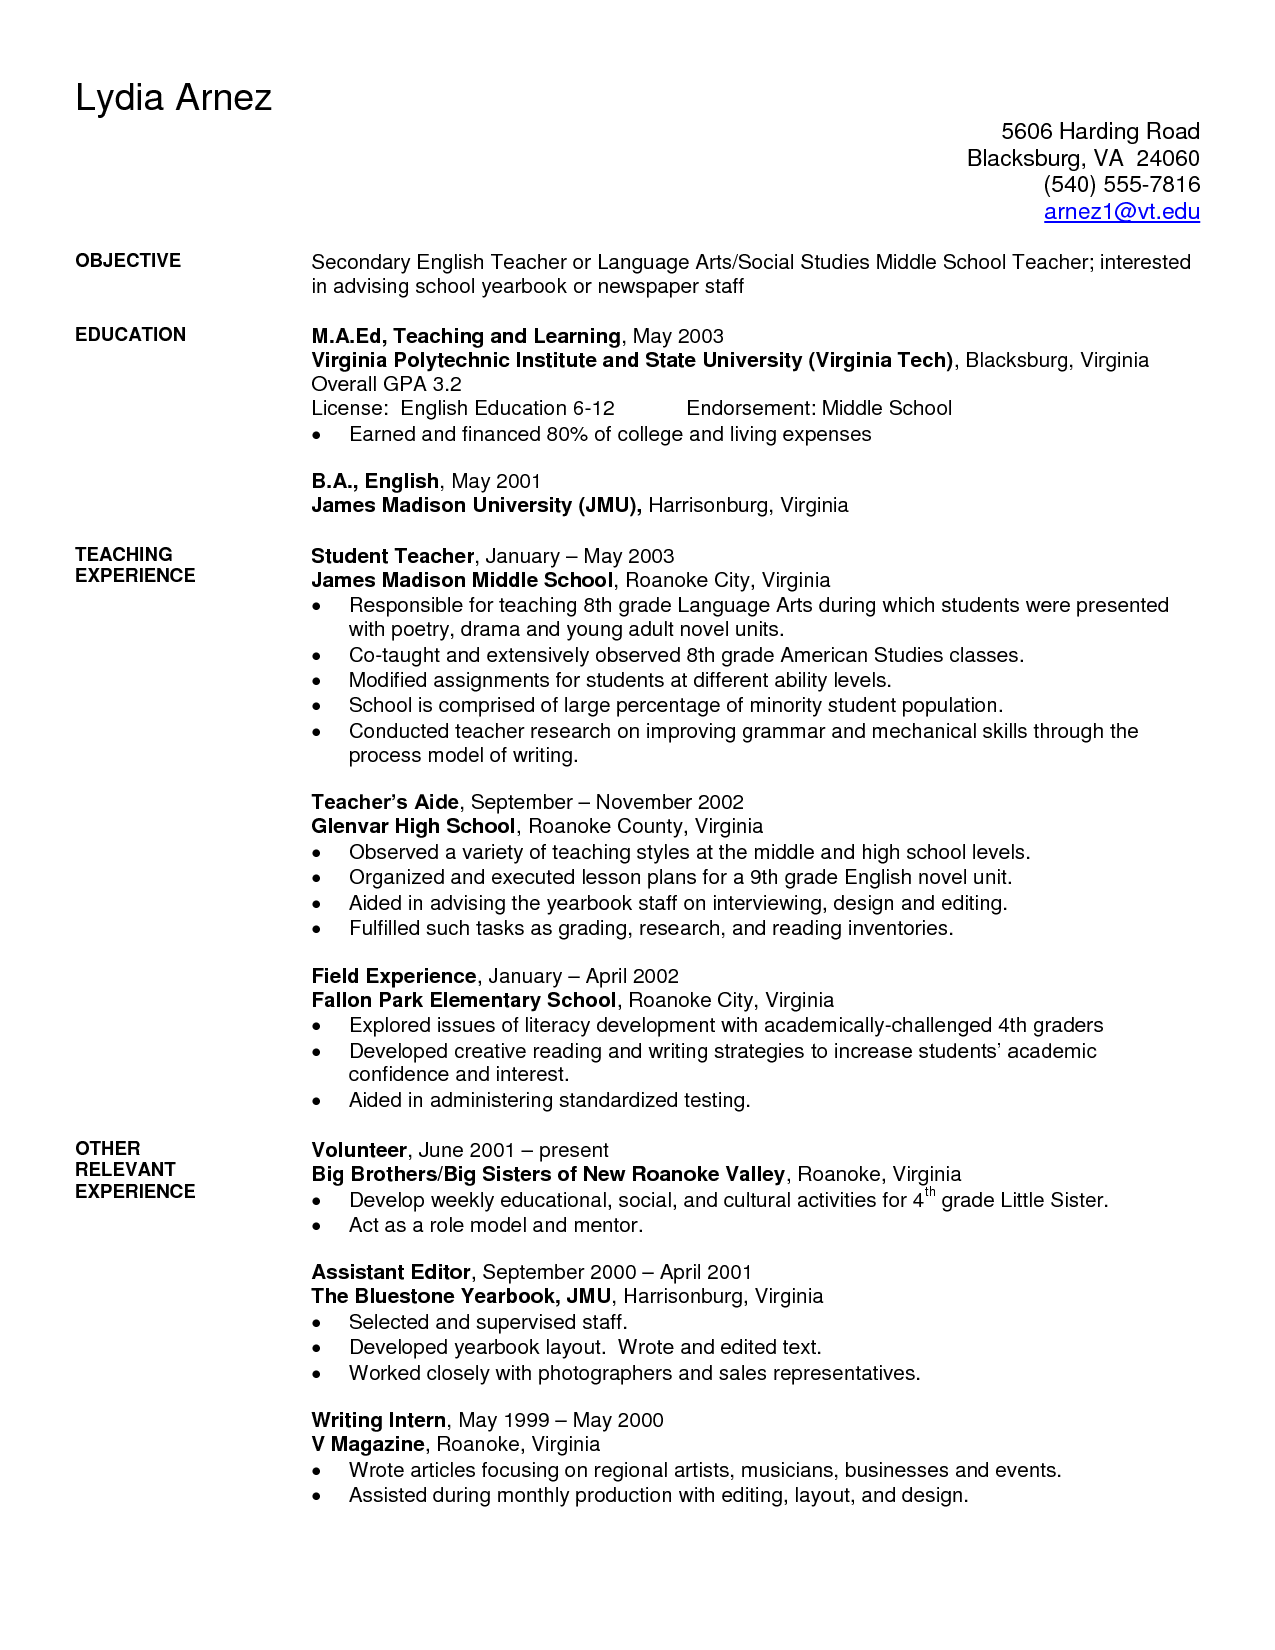 Resume Education Example Enchanting Art Teacher Resume Examples  Sample Secondary Teacher Resume Design Decoration